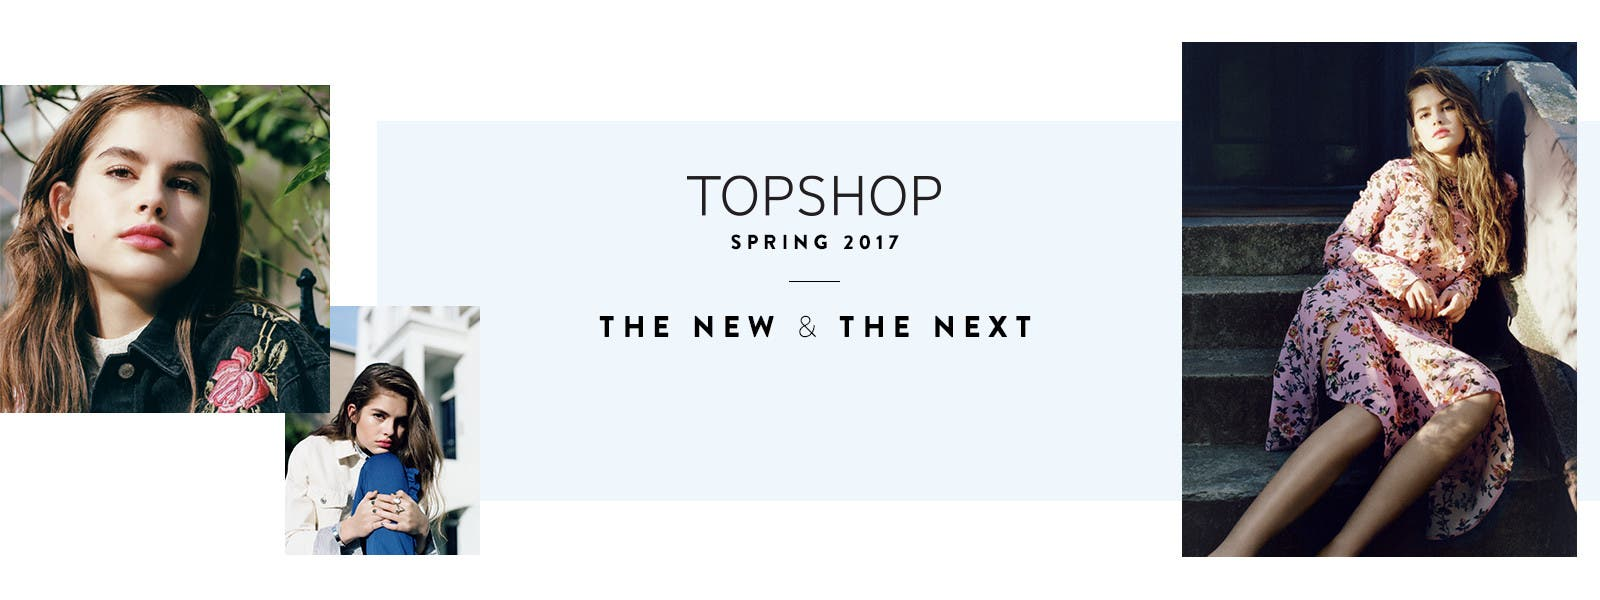 Topshop spring 2017: the new and the next. The latest clothing, shoes and accessories.